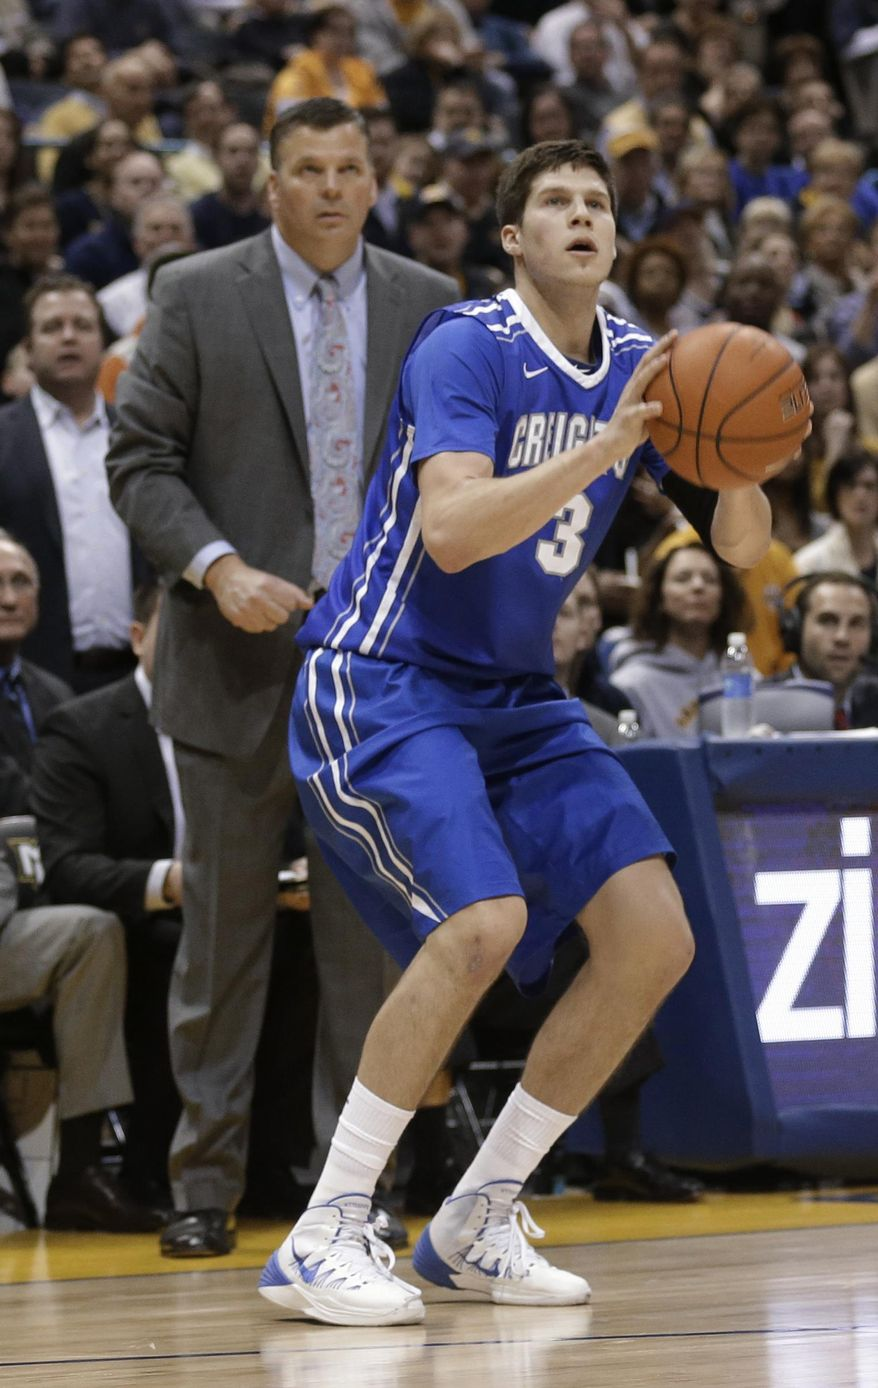 Creighton's Doug McDermott (3) shoots against Marquette as his coach and father, Greg McDermott, watches during the second half of an NCAA college basketball game Wednesday, Feb. 19, 2014, in Milwaukee. Creighton won 85-70. (AP Photo/Jeffrey Phelps)